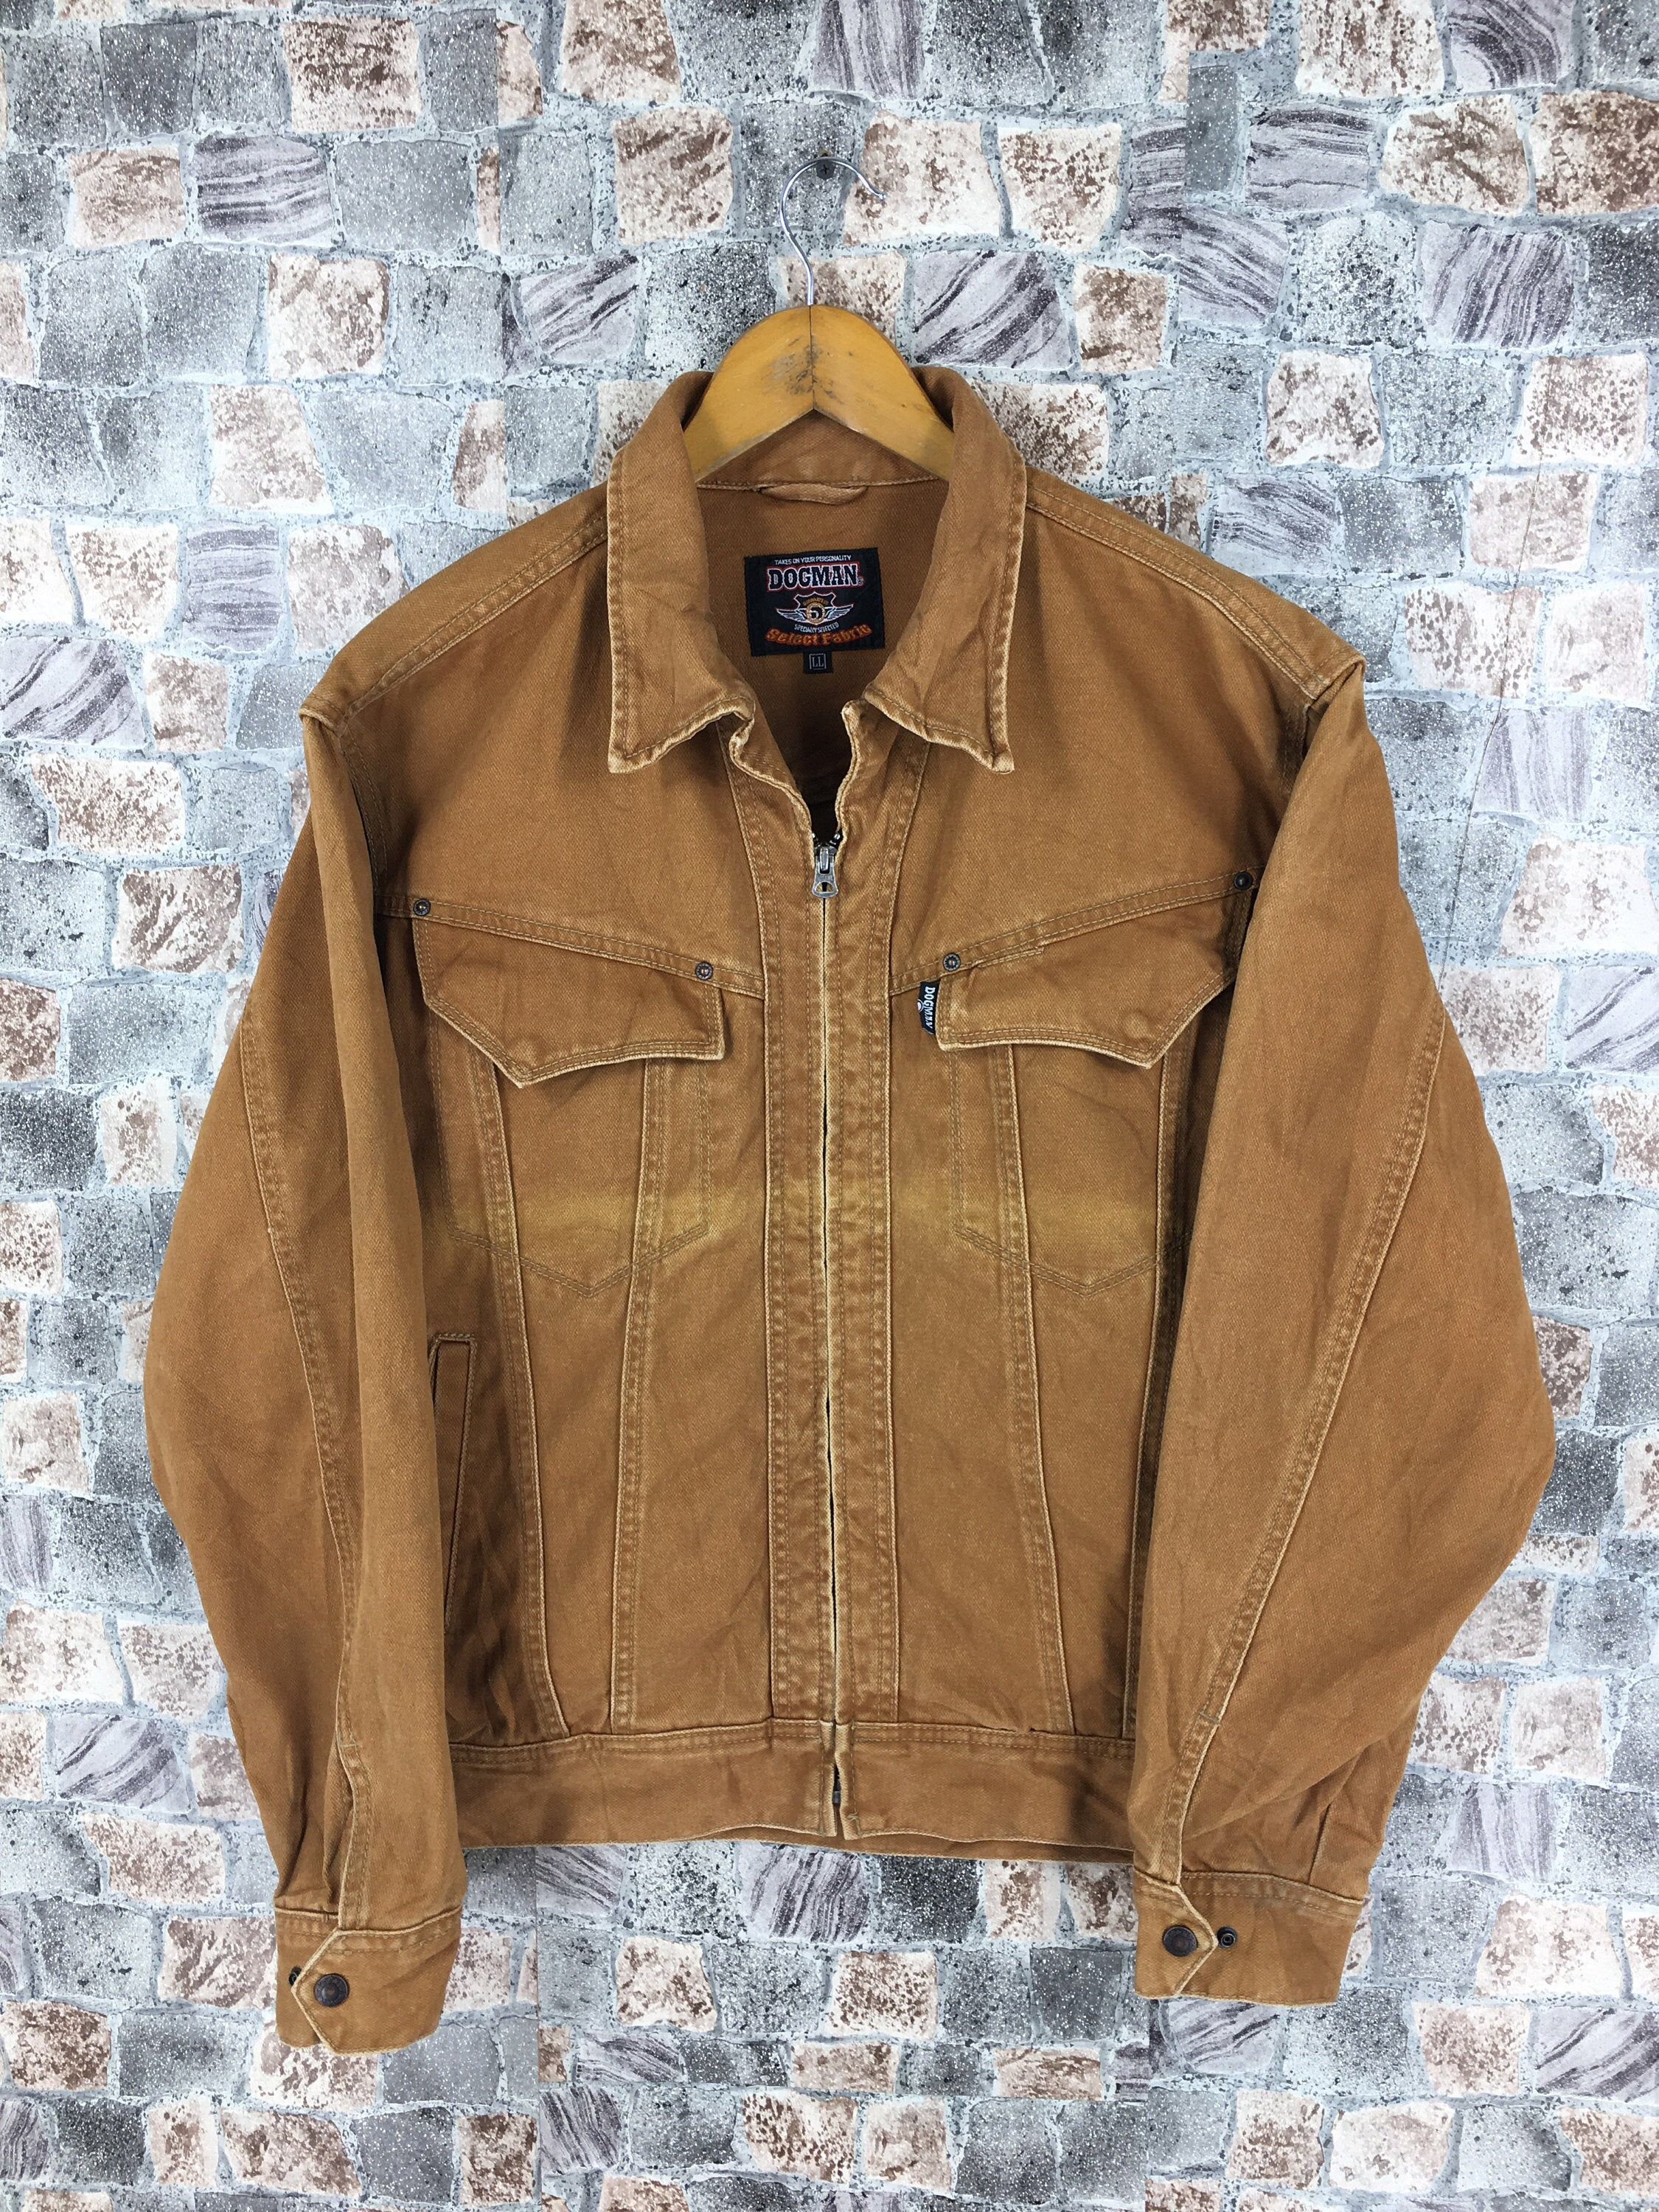 Excited To Share This Item From My Etsy Shop Vintage Dogman Denim Workers Jeans Jacket Medium Brown French In 2020 Denim Jacket Women Vintage Denim Jacket Denim Coat